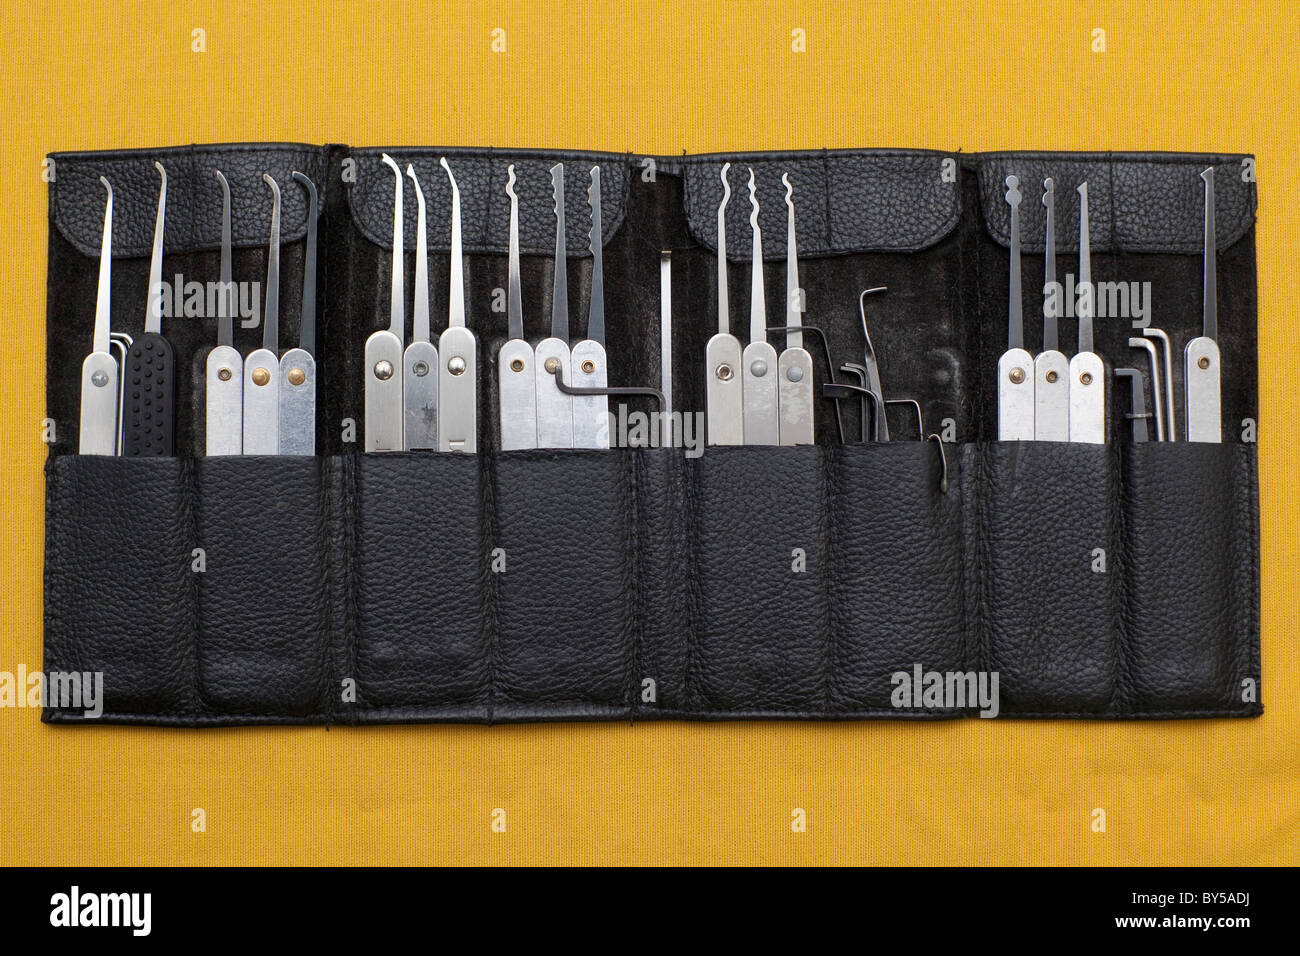 Lock picking set in a leather pouch - Stock Image